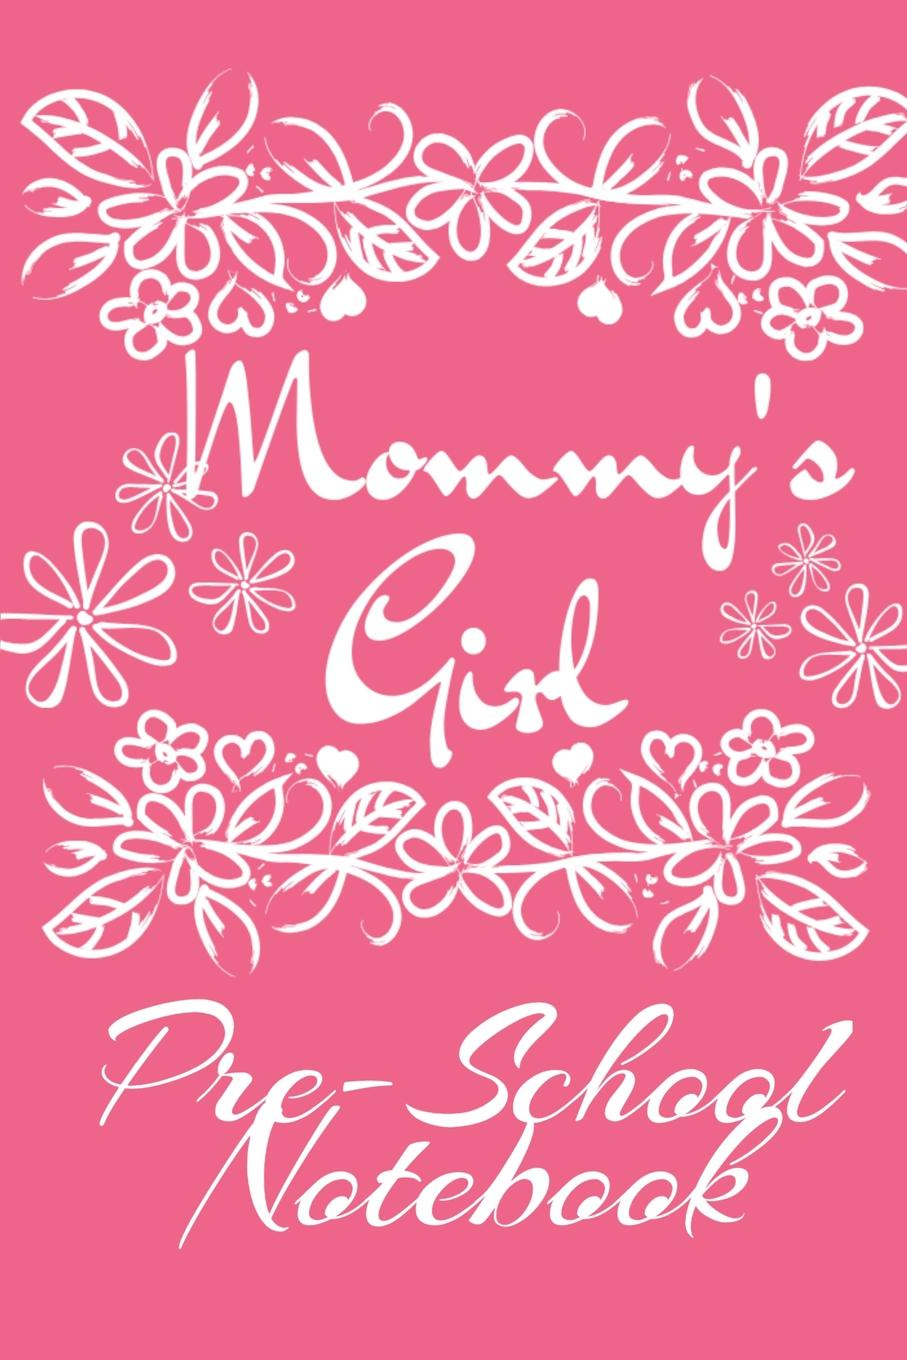 Jennifer Wellington Mommy. s Girl Pre-School Notebook. Motivational . Inspirational School Notebook . Diary - Cute Pink Journaling Gift For Girls - 6x9 Lined Paper, 120 Pages Ruled Notepad lizzie timewarp notebook pink and white striped